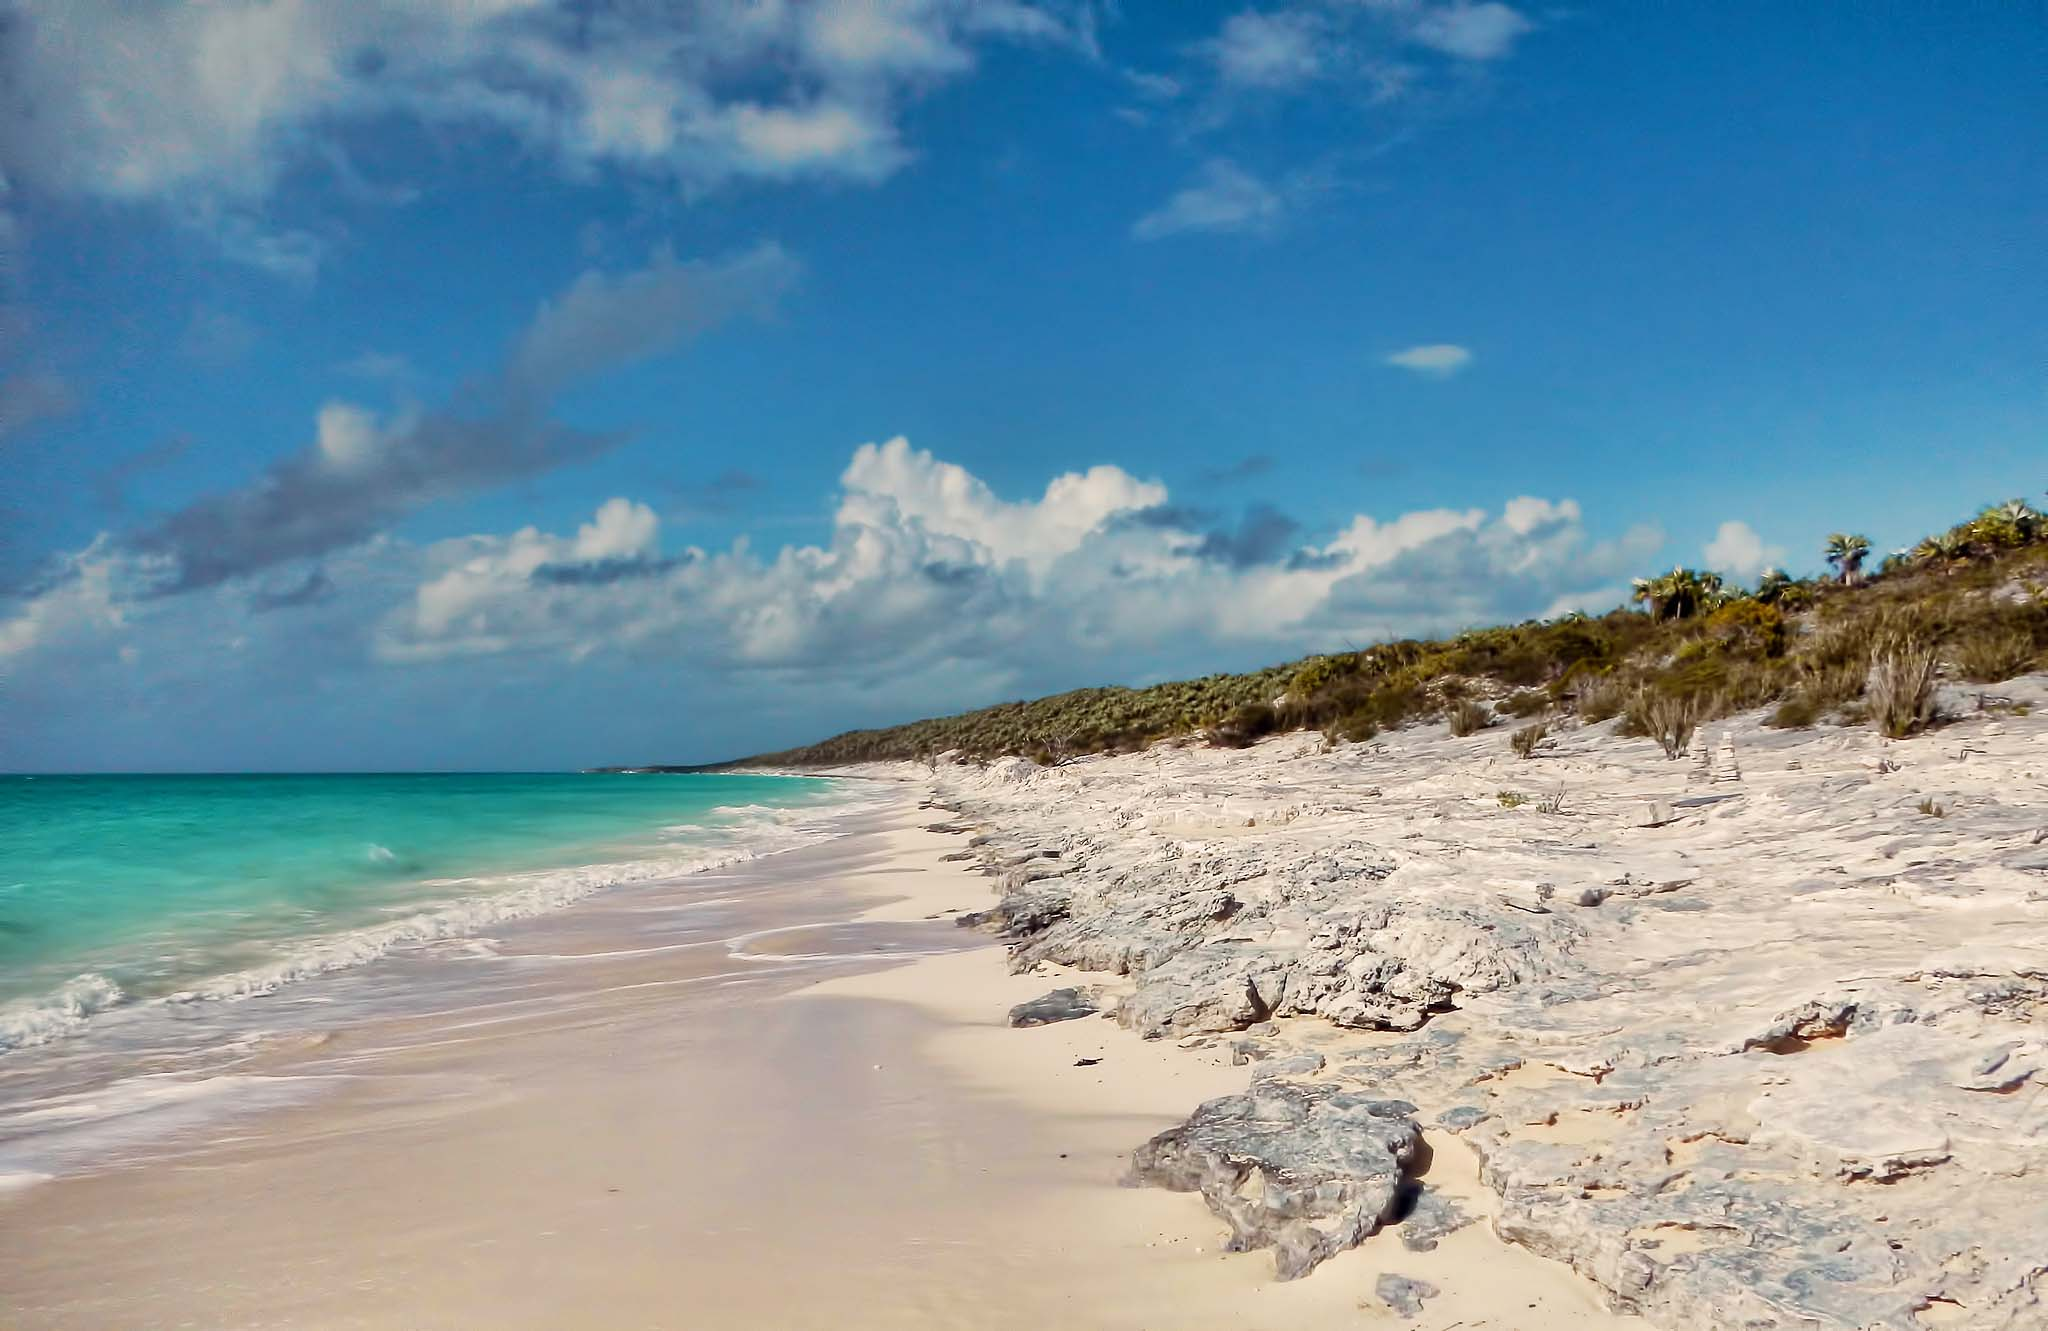 The beach at Alligator Point on Cat Island, Bahamas.